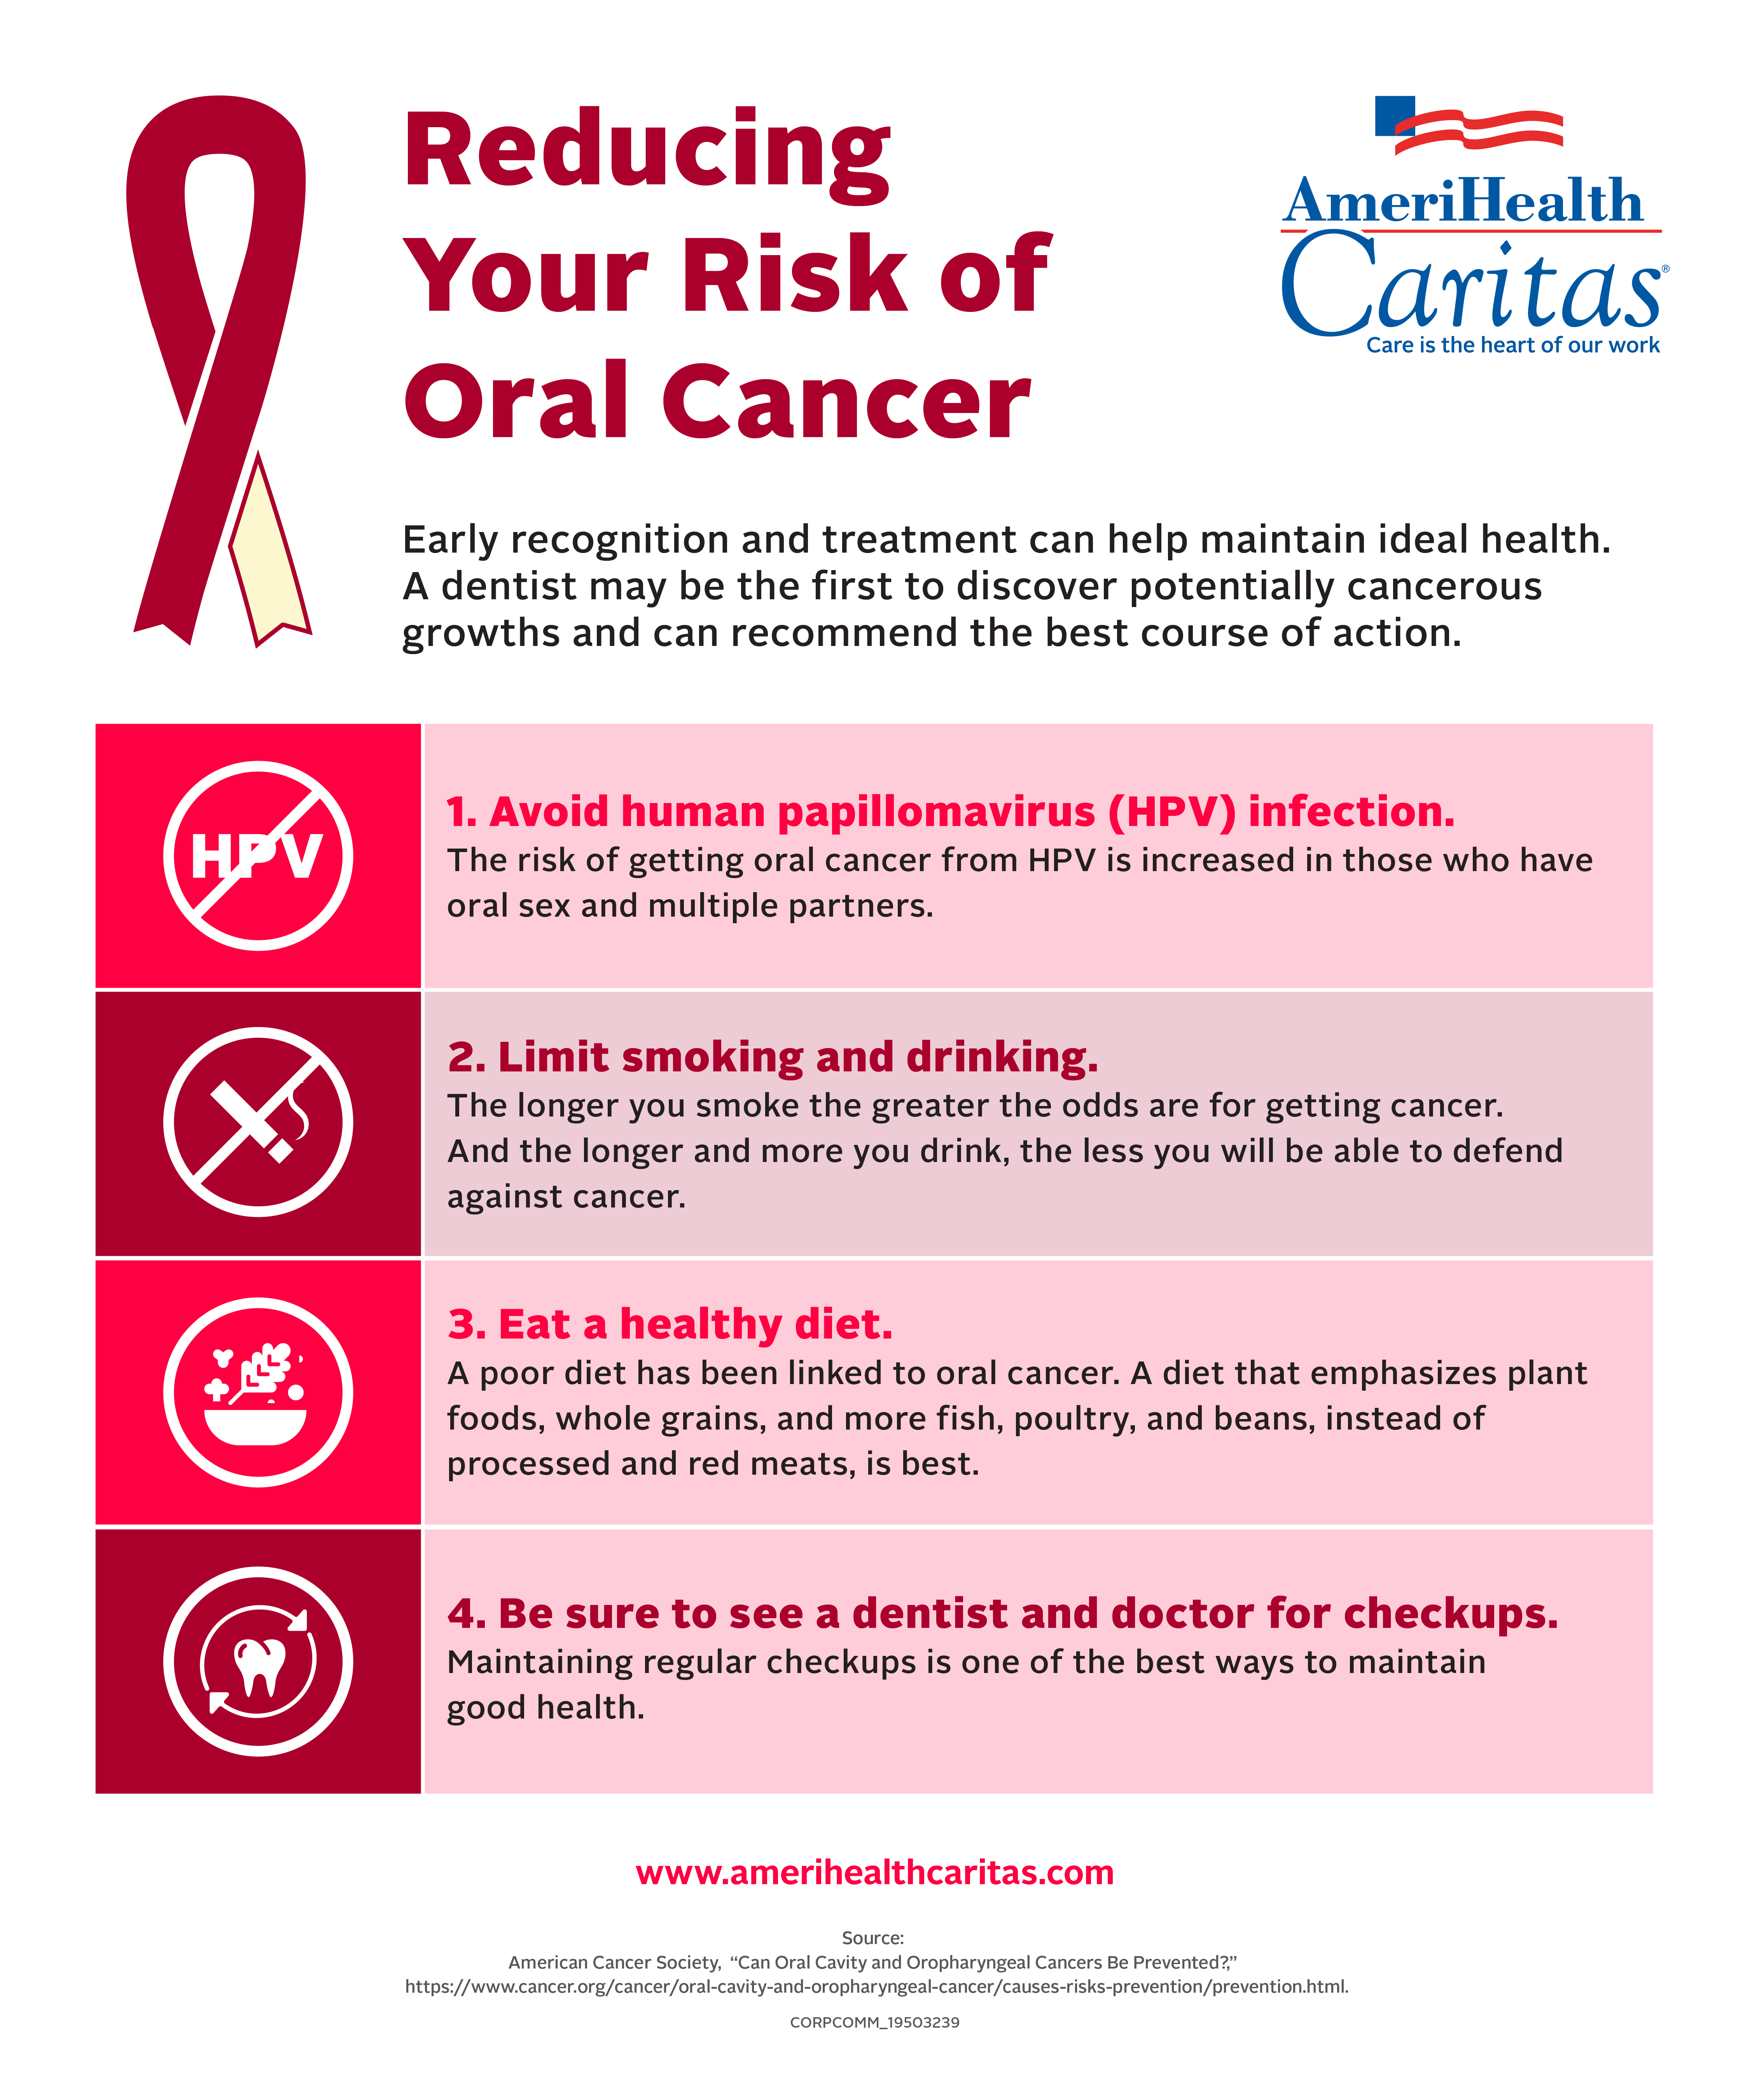 Can hpv cause other cancers - csrb.ro